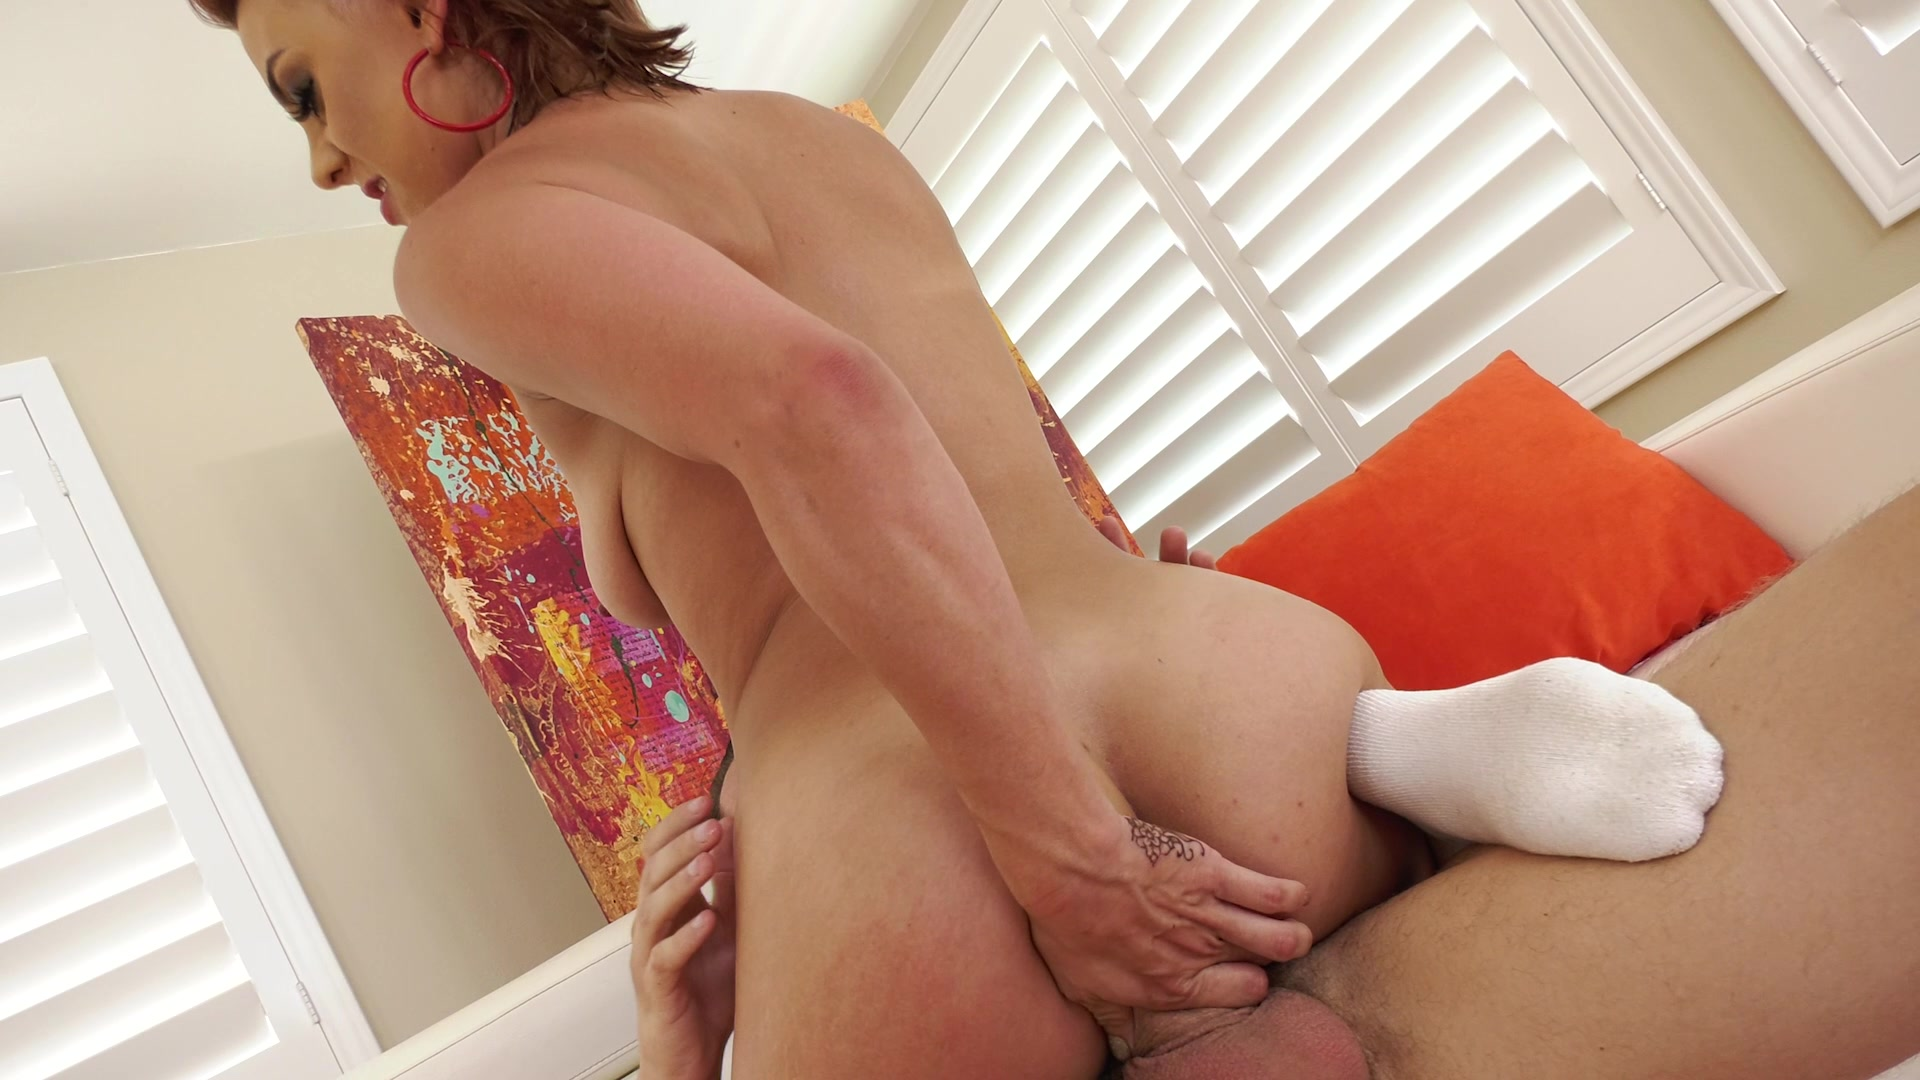 scenes-weeds-depraved-anal-coed-beauty-pagaent-pure